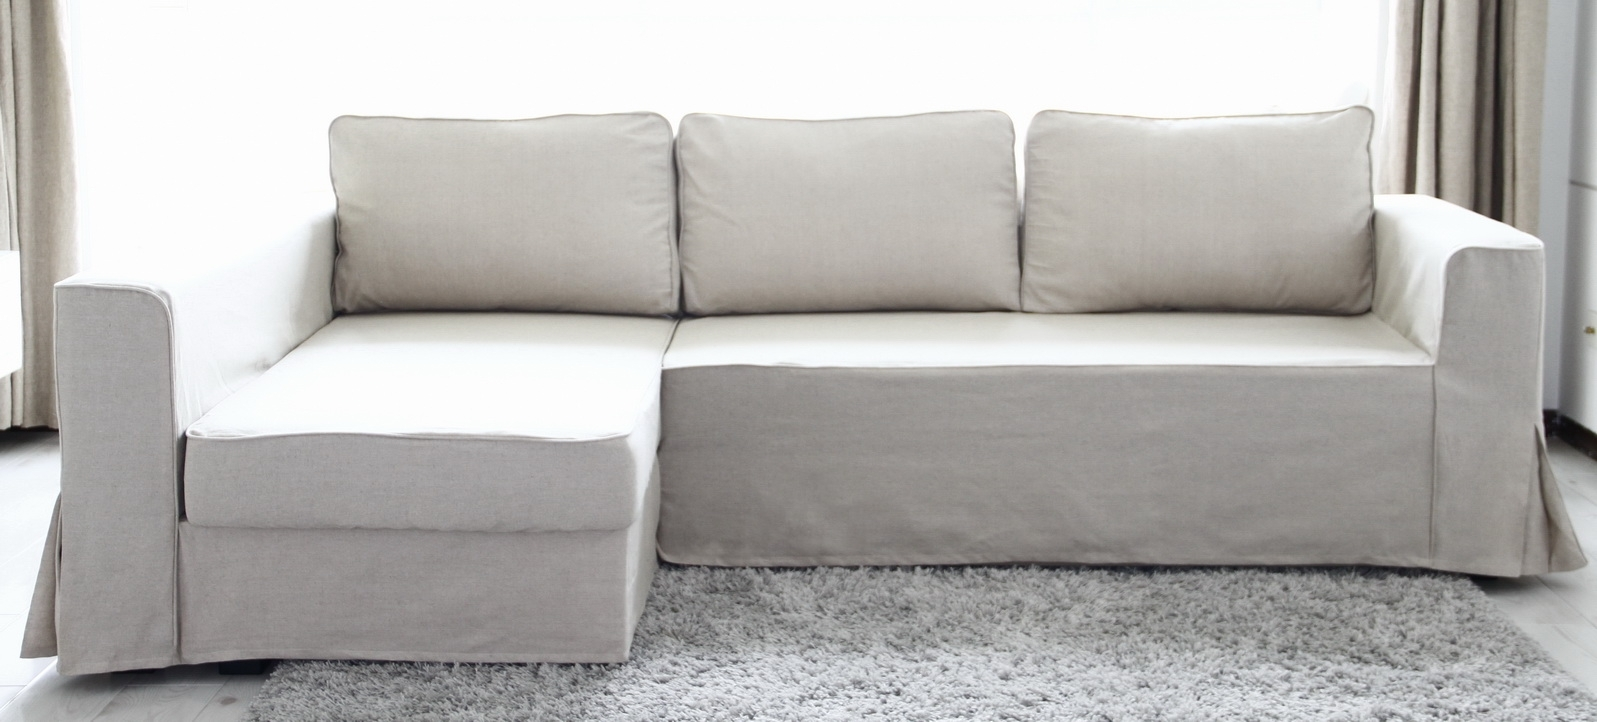 Loose Fit Linen Manstad Sofa Slipcovers Now Available Inside Manstad Sofas (Image 7 of 10)